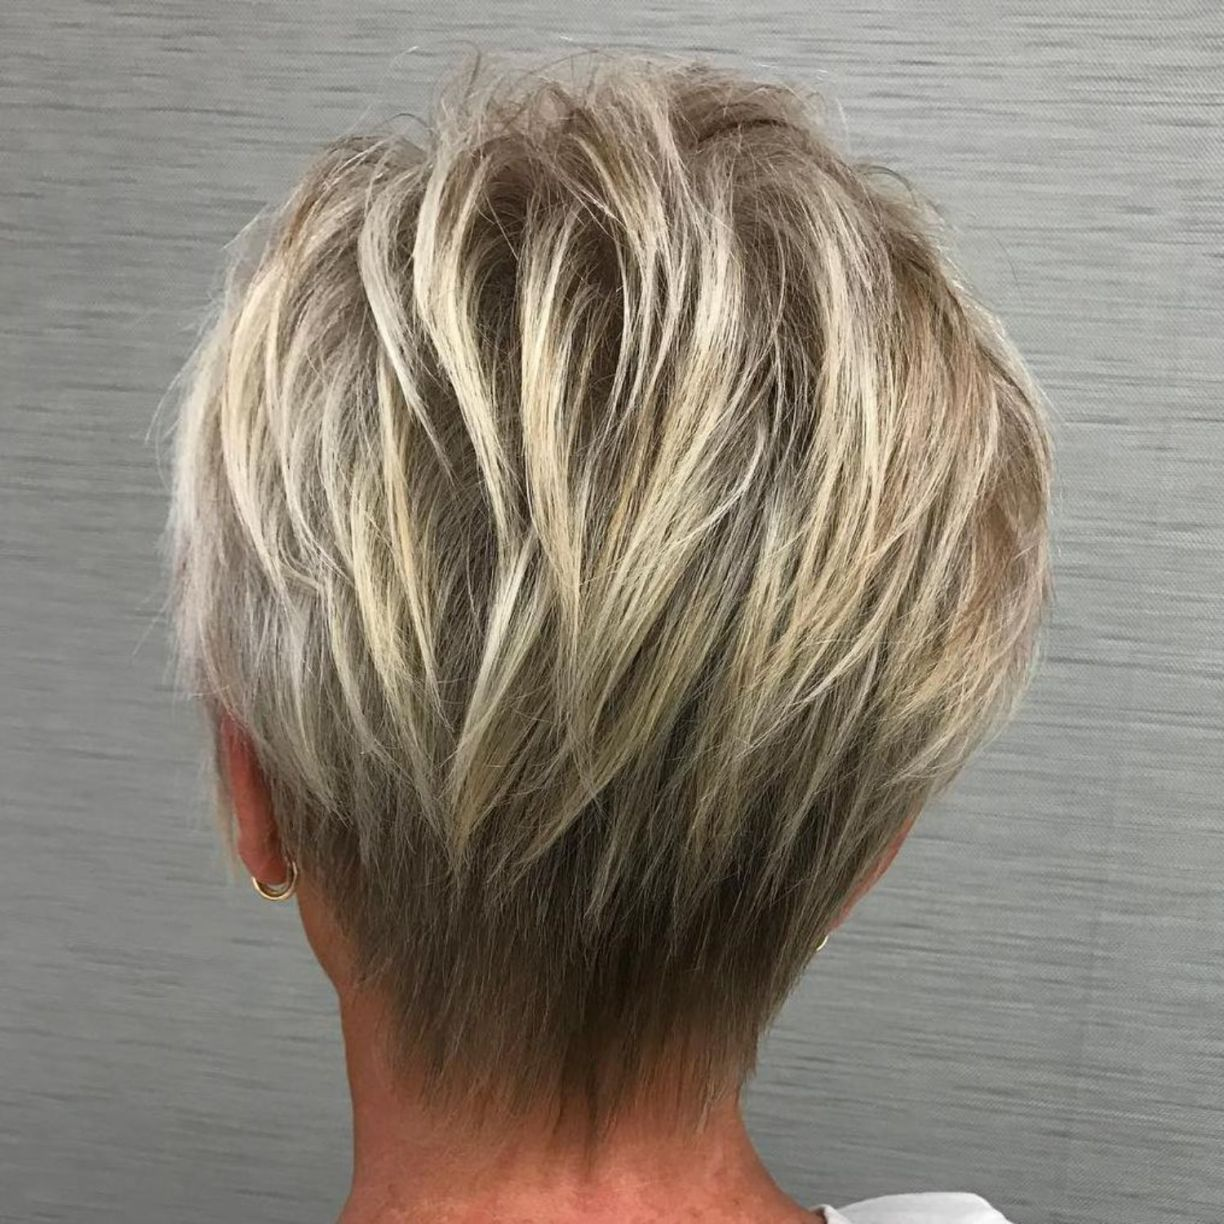 Best Modern Haircuts and Hairstyles for Women Over   Beauty